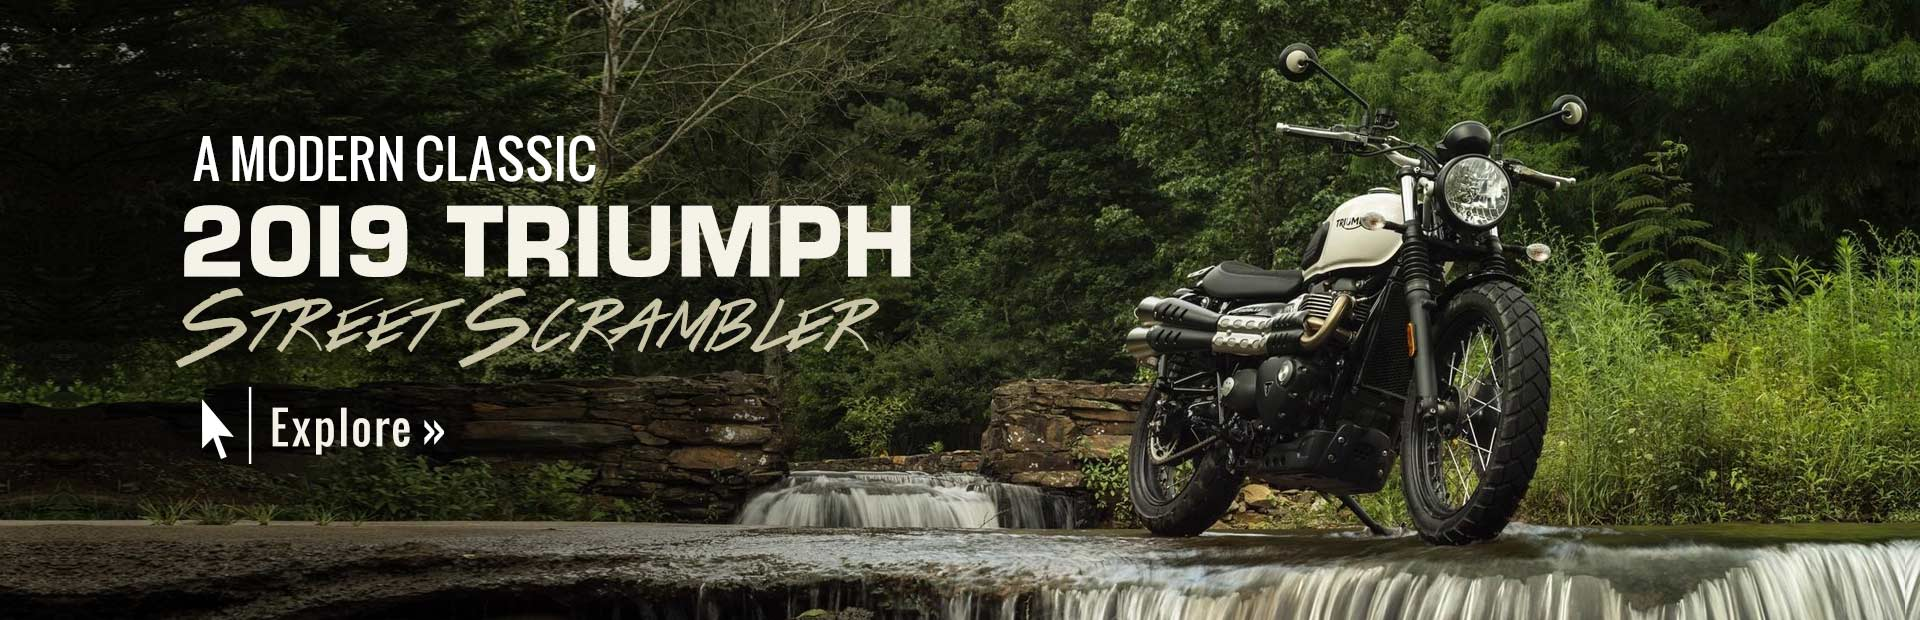 2019 Triumph Street Scrambler: Click here to view the model.